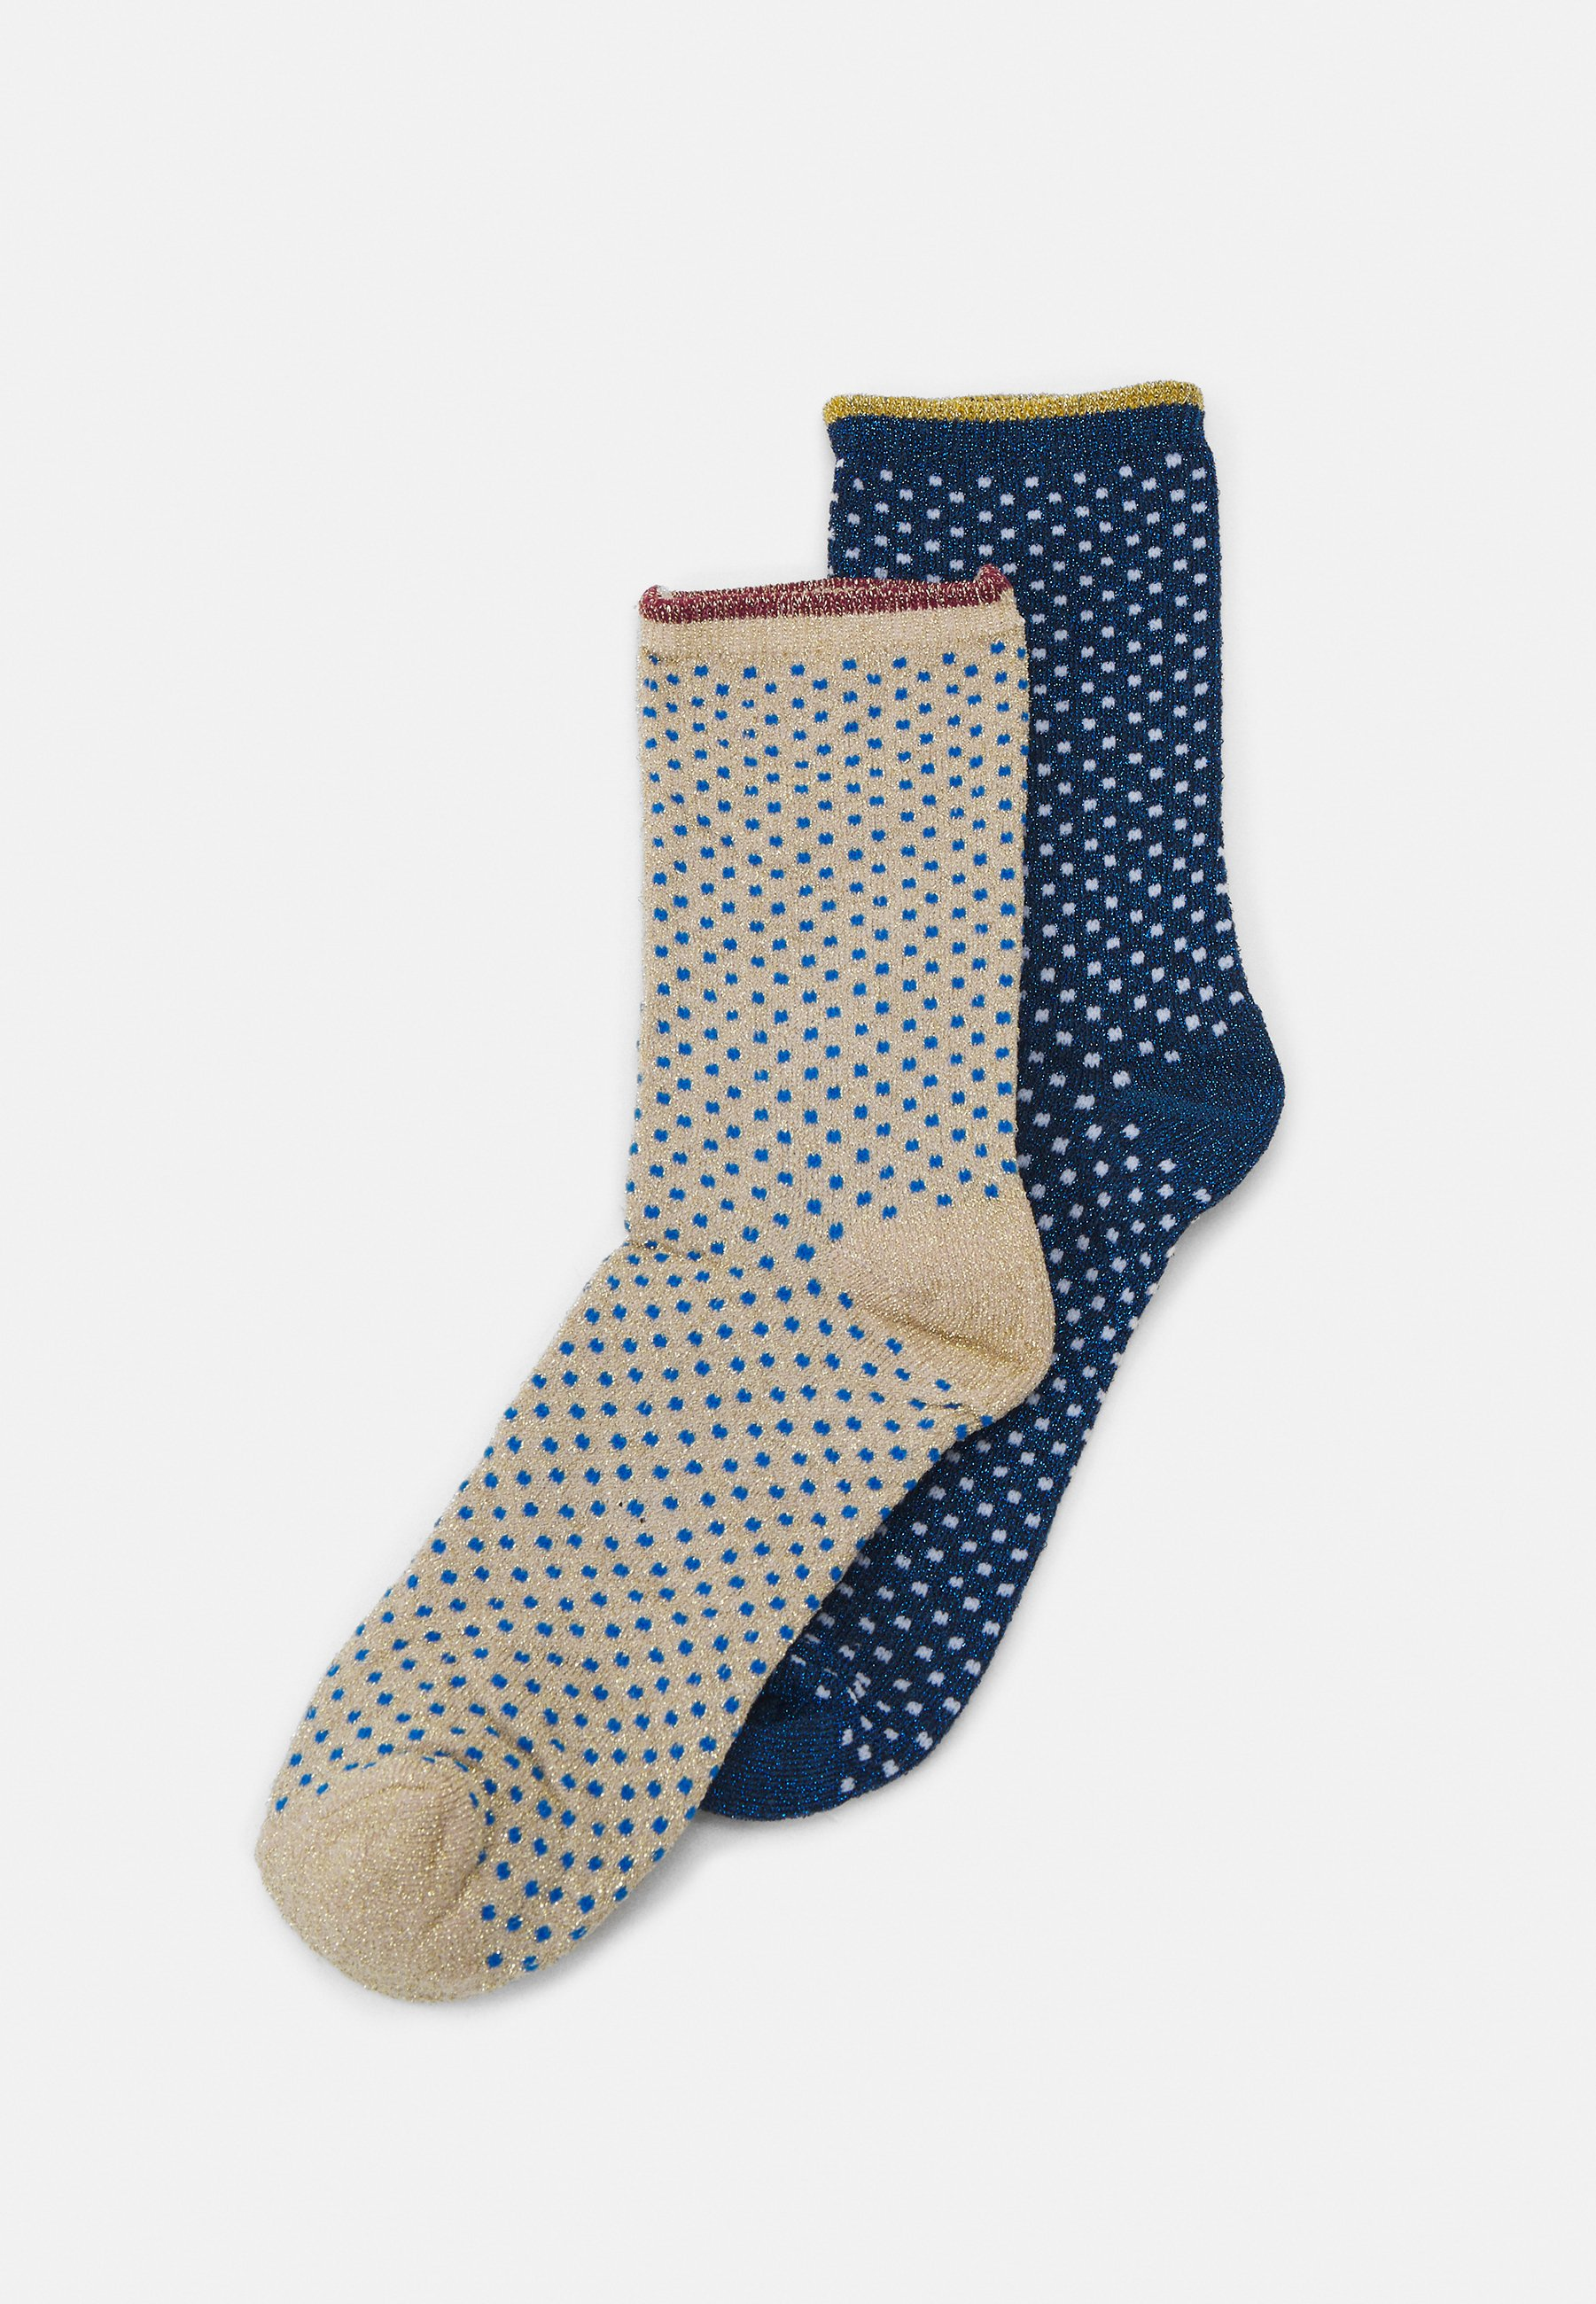 Femme DINA SMALL DOTS 2 PACK - Chaussettes